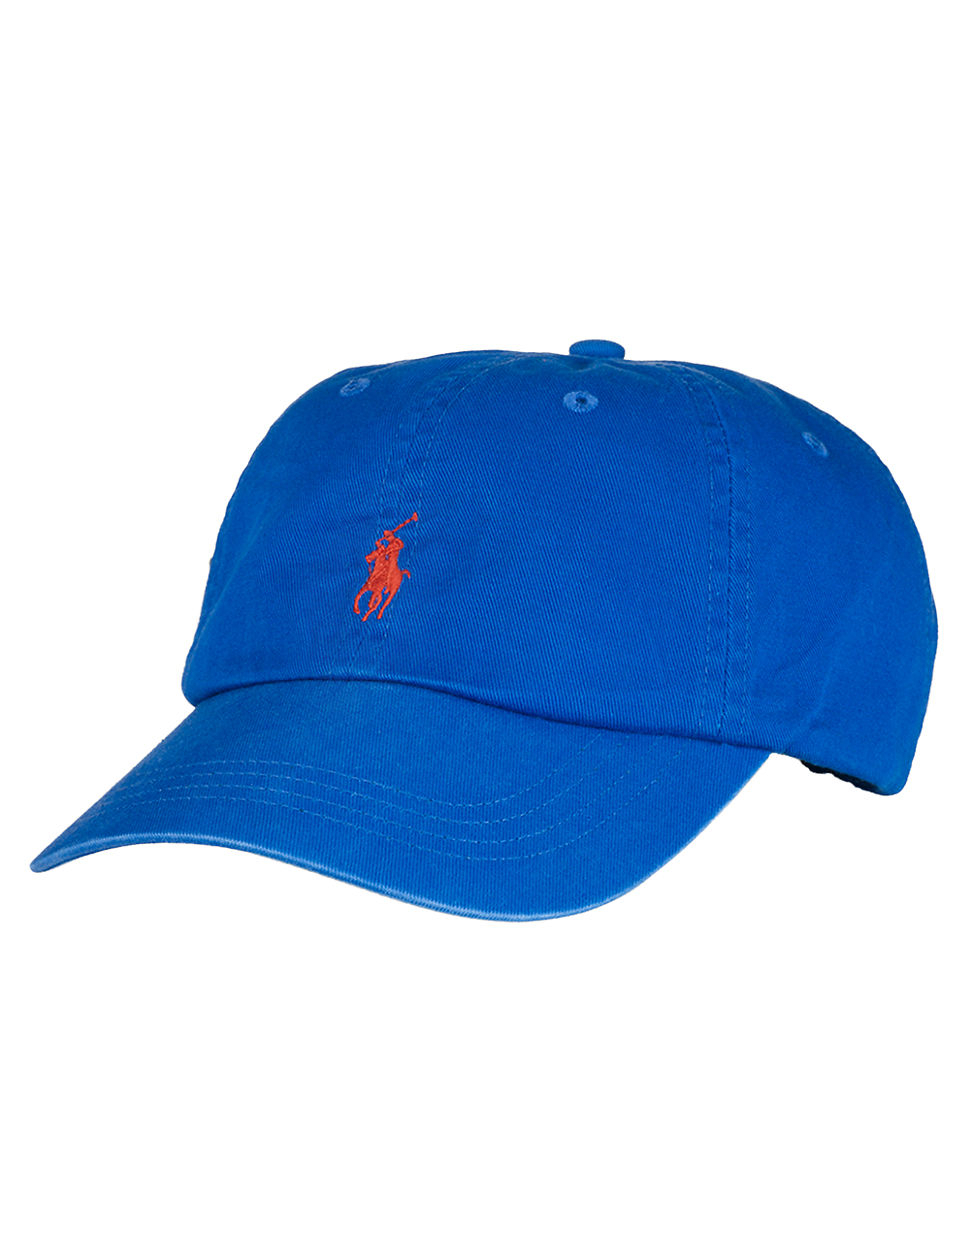 polo ralph lauren classic chino sports cap in blue for men. Black Bedroom Furniture Sets. Home Design Ideas